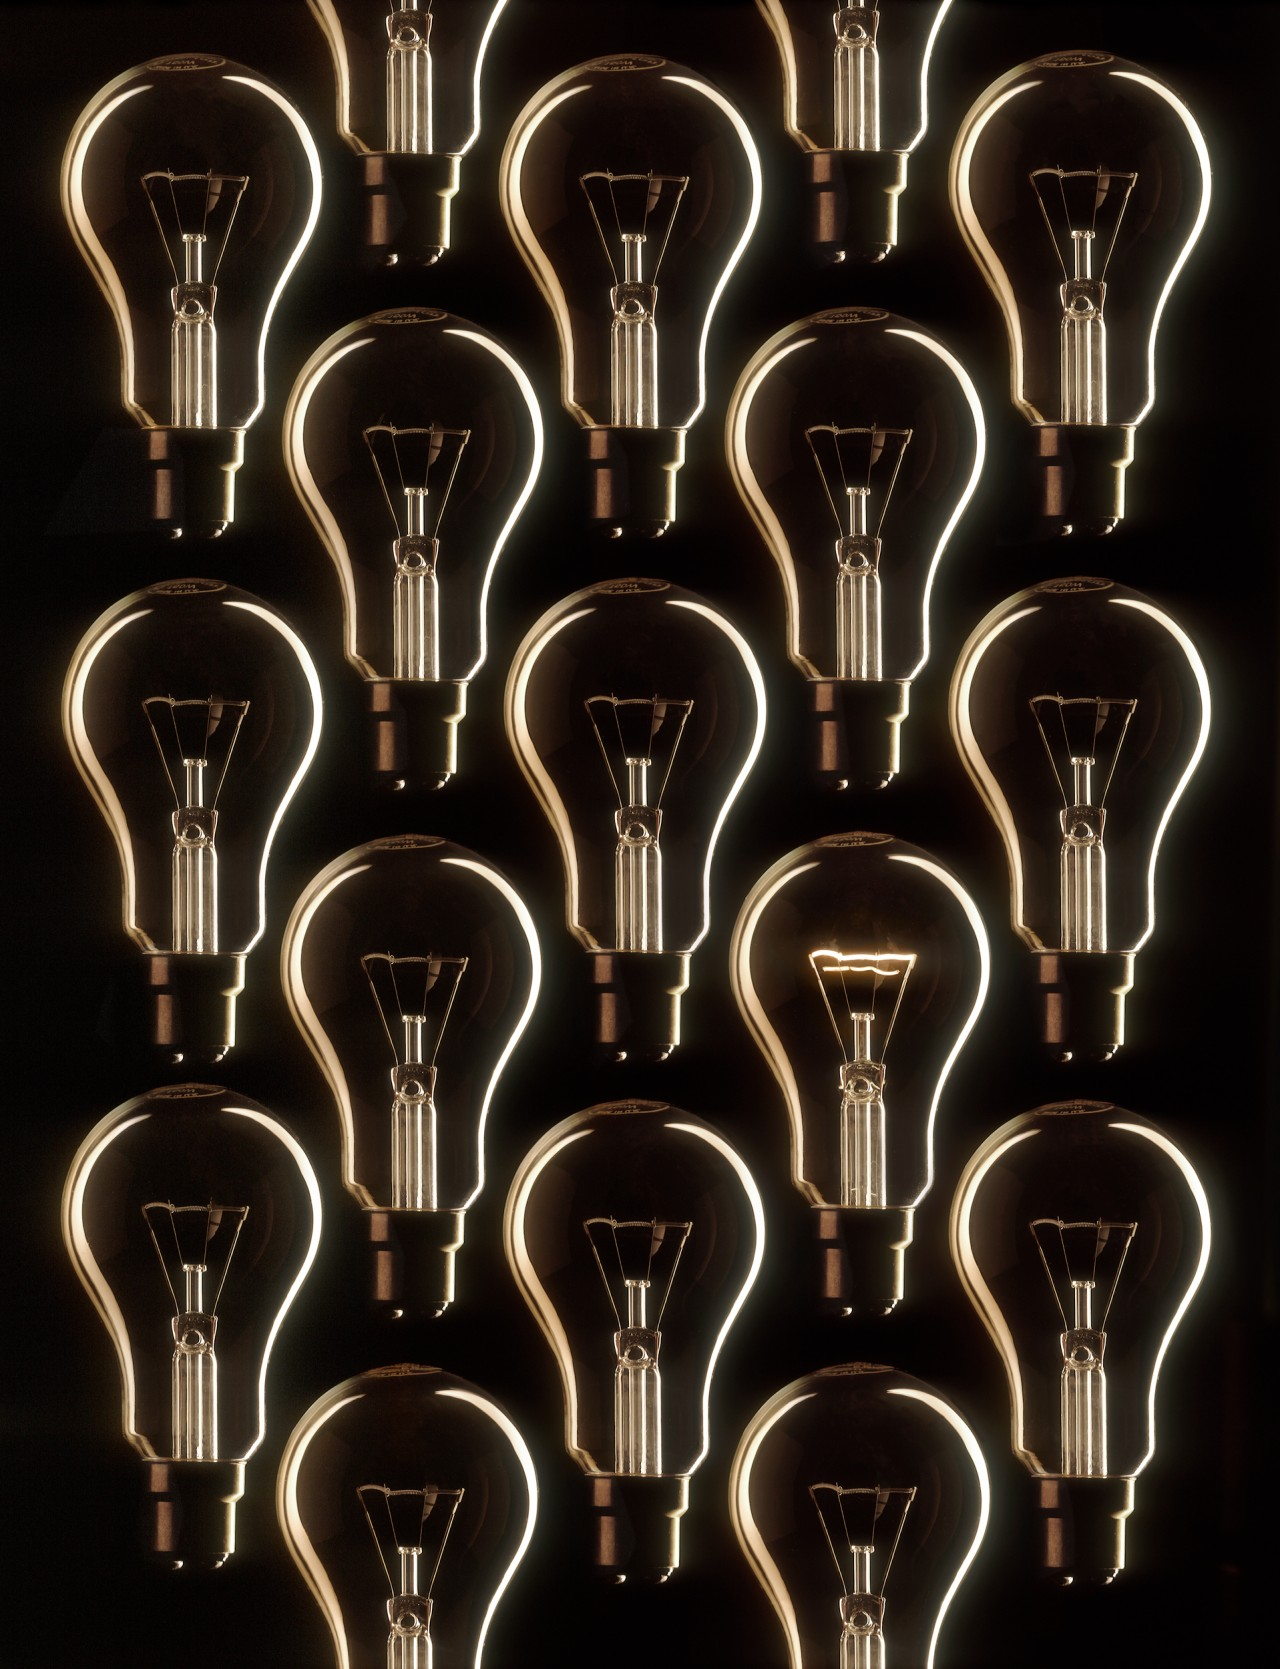 Peter Marshall Photography Lightbulbs